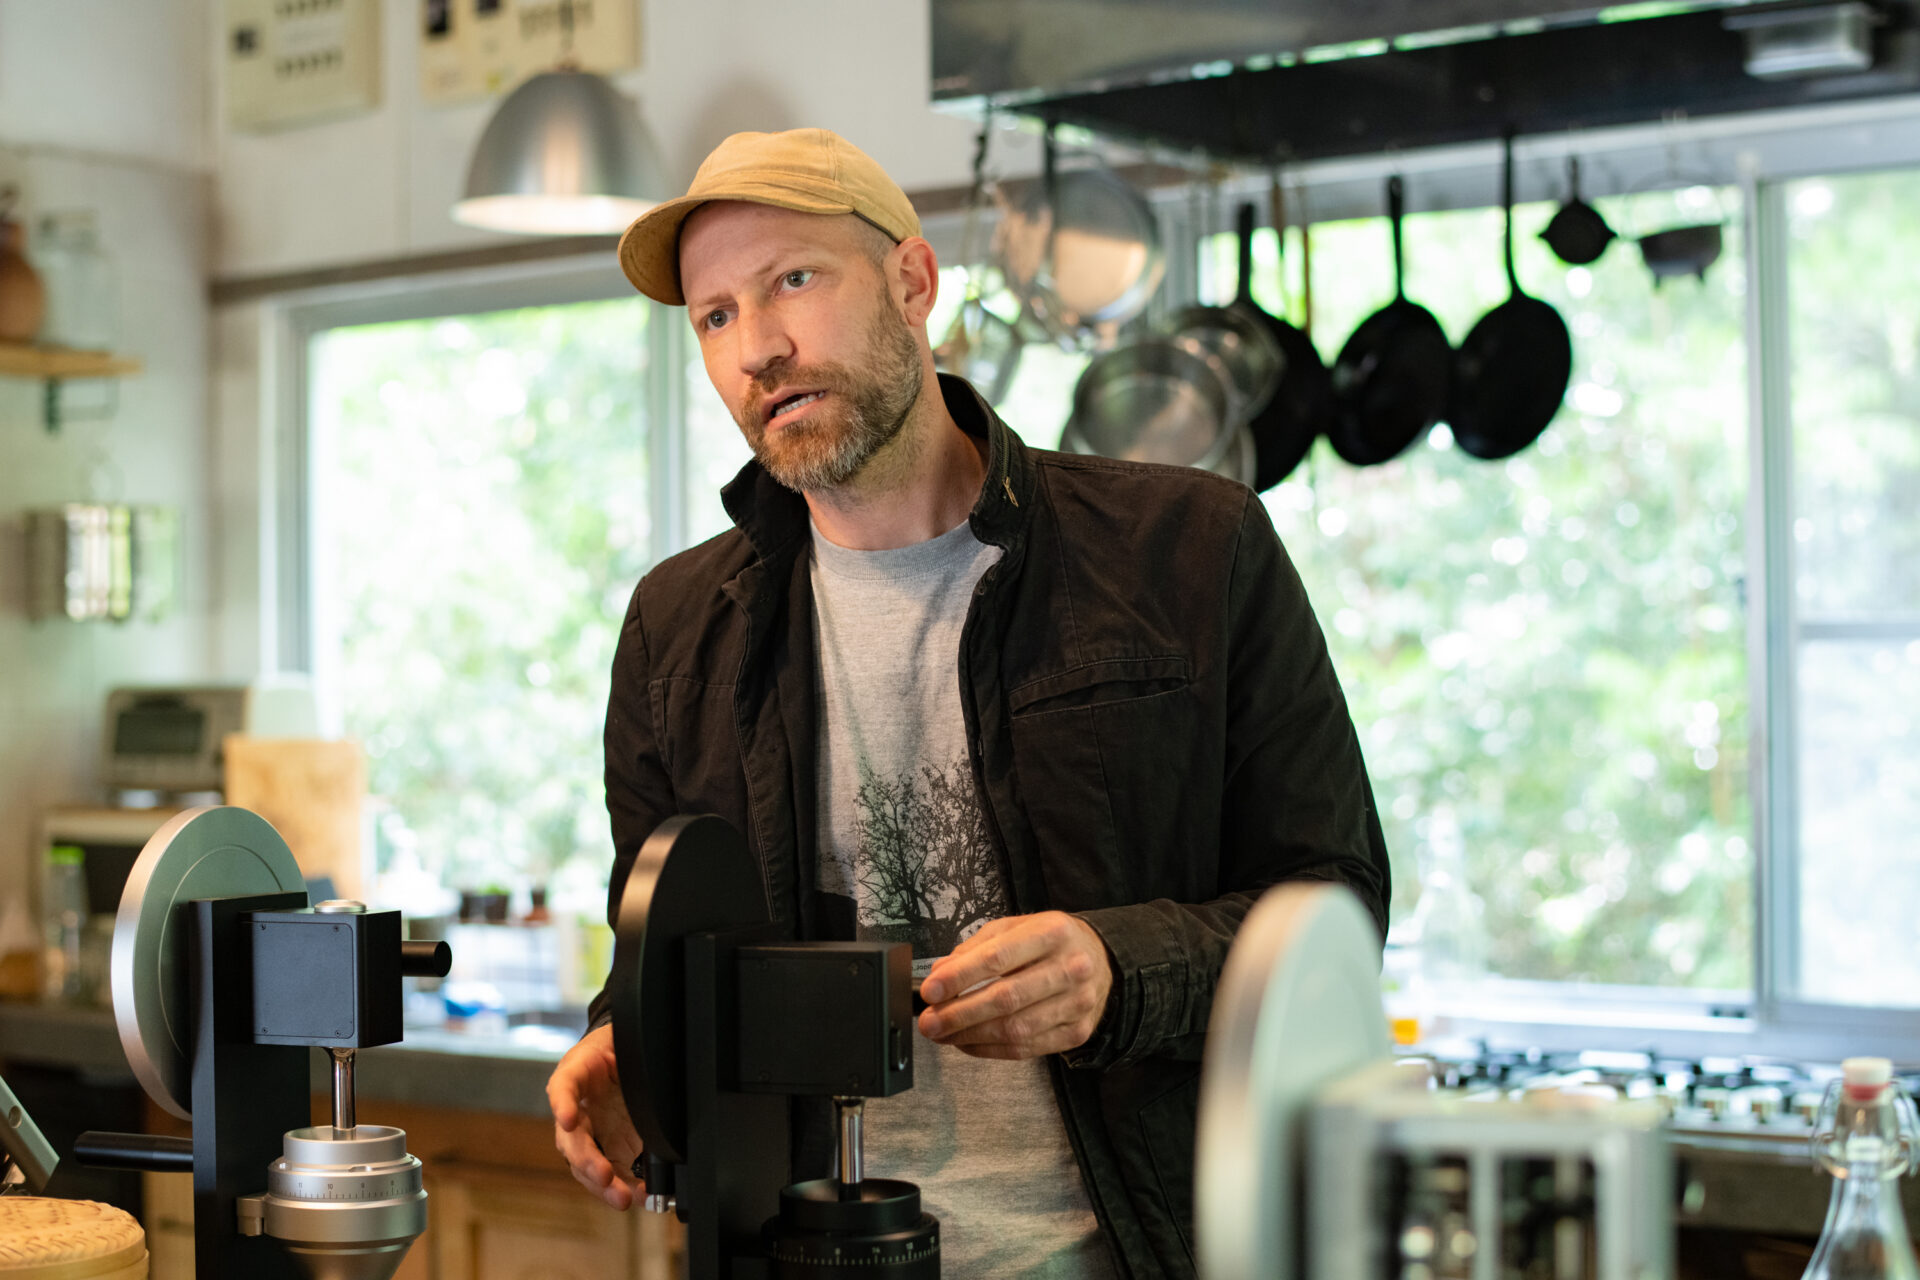 How This Former Apple Engineer Uses Coffee Equipment to Create 5 Minutes of Bliss | DIG THE TEA